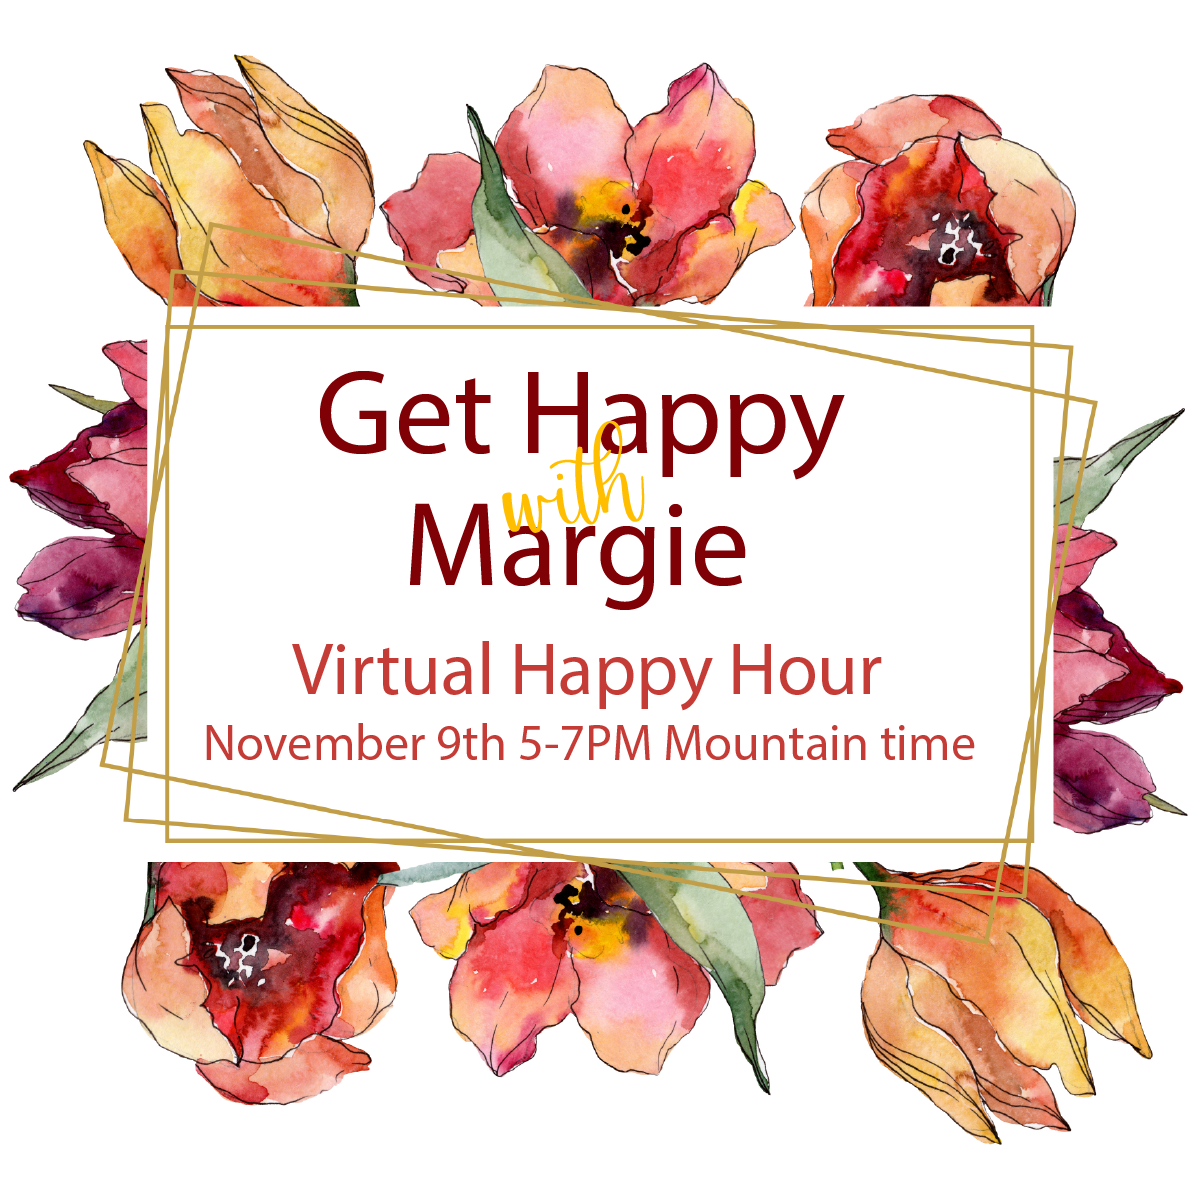 Get Happy with Margie November 9th 5-7PM Mountain Time